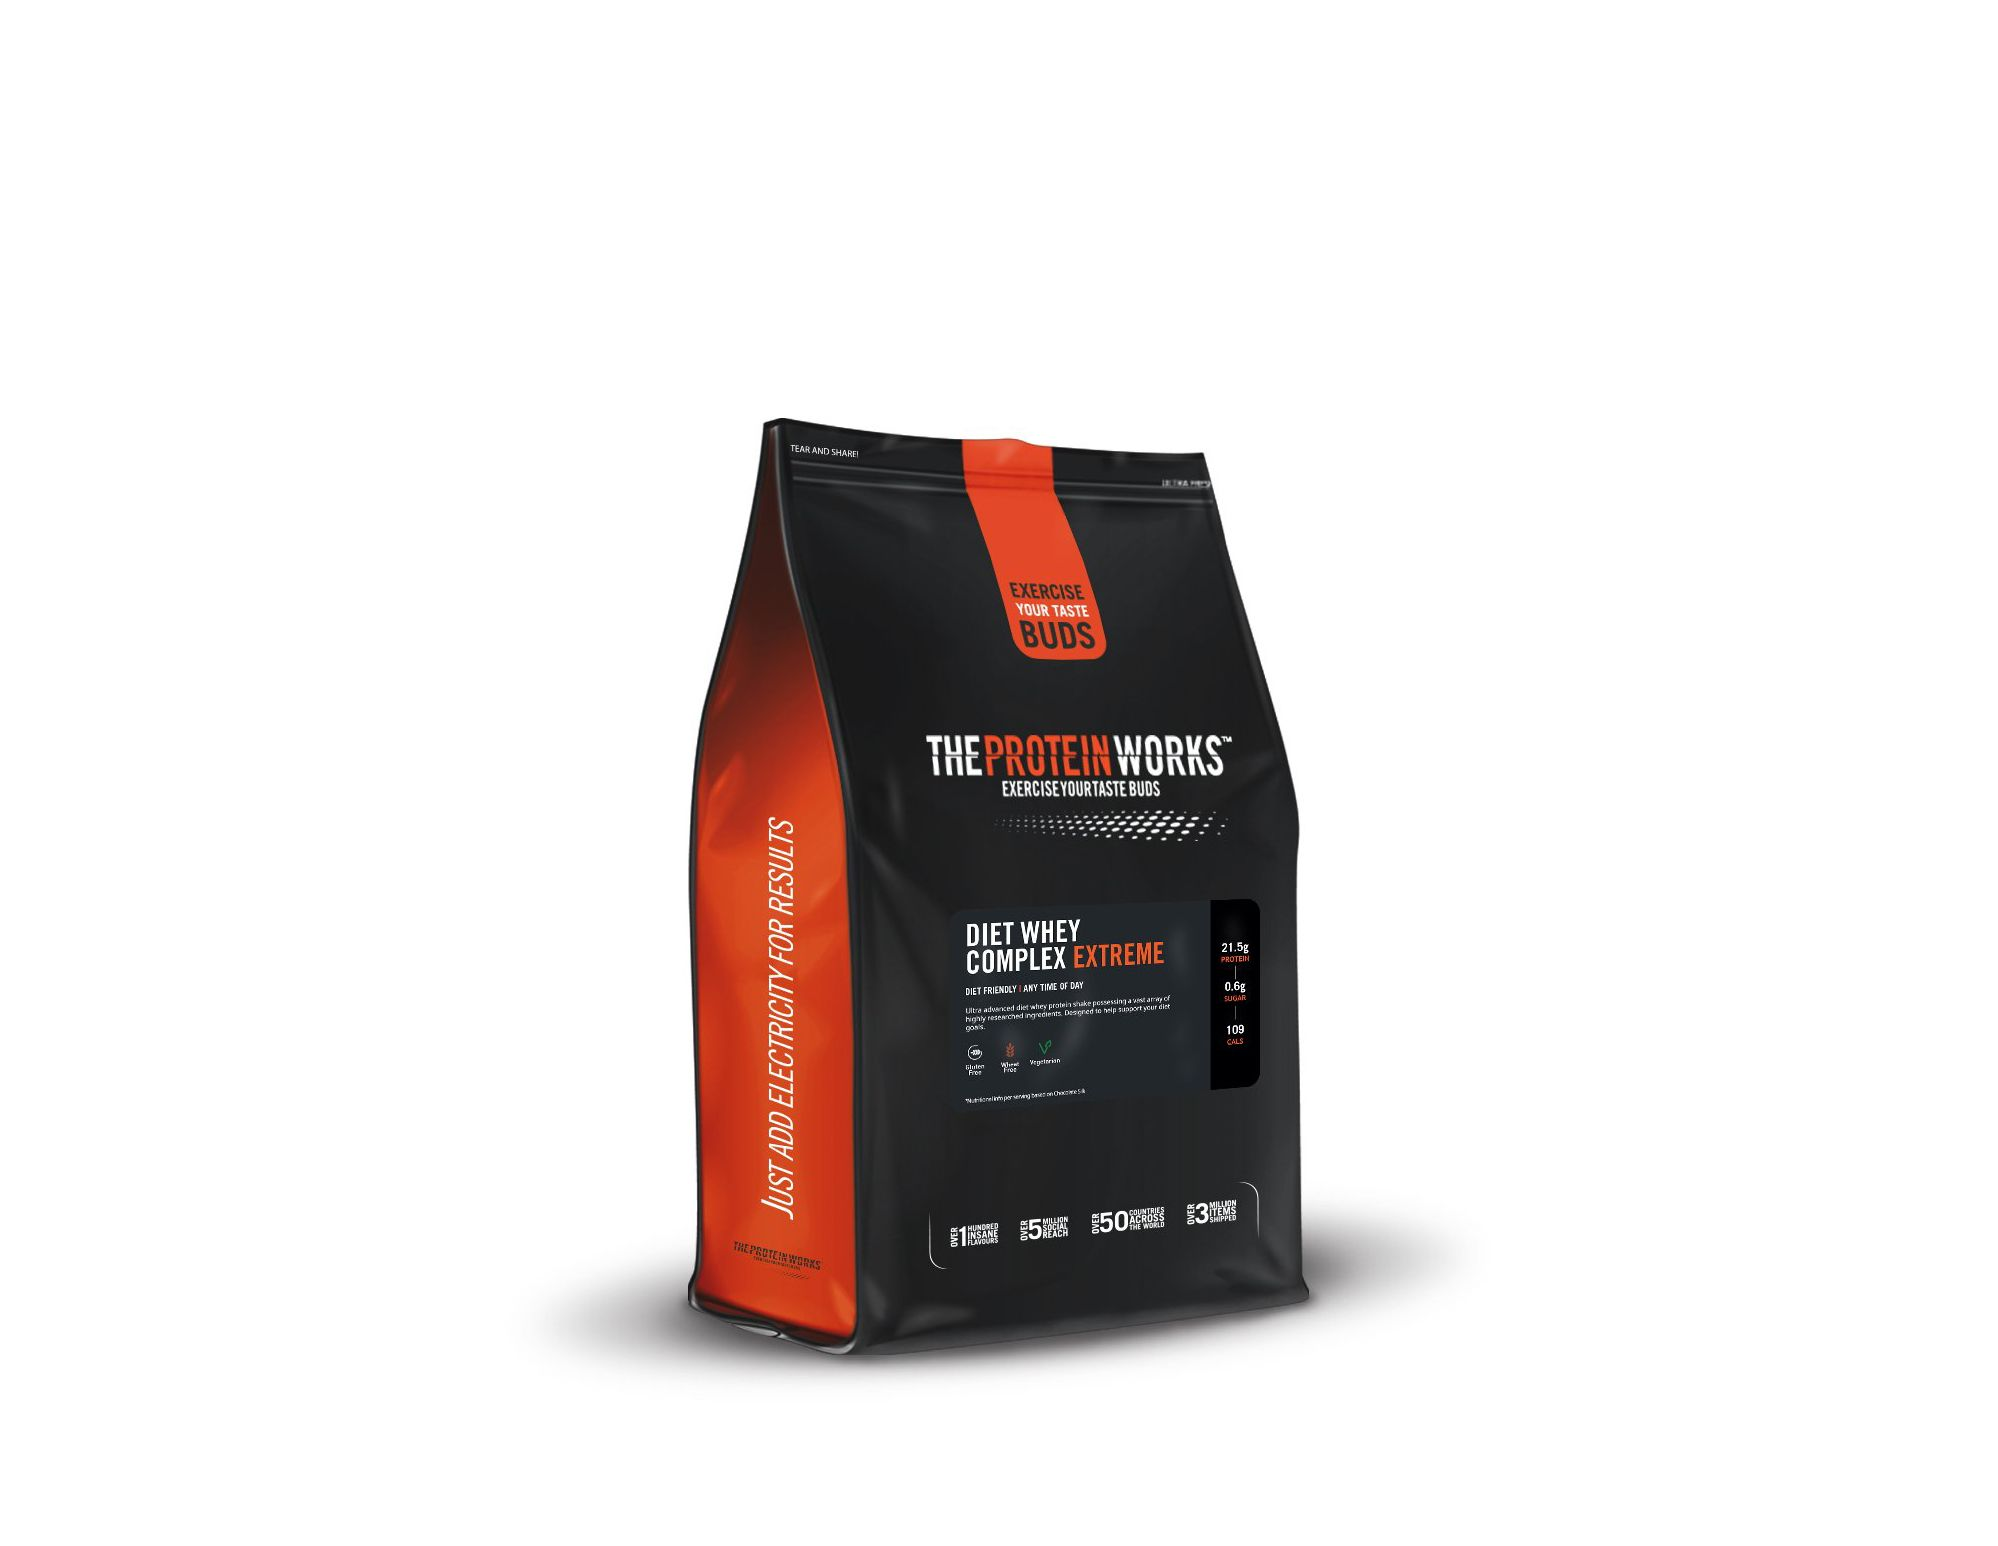 Save up to 53% on Protein Works Supplements in the Amazon Black Friday sale